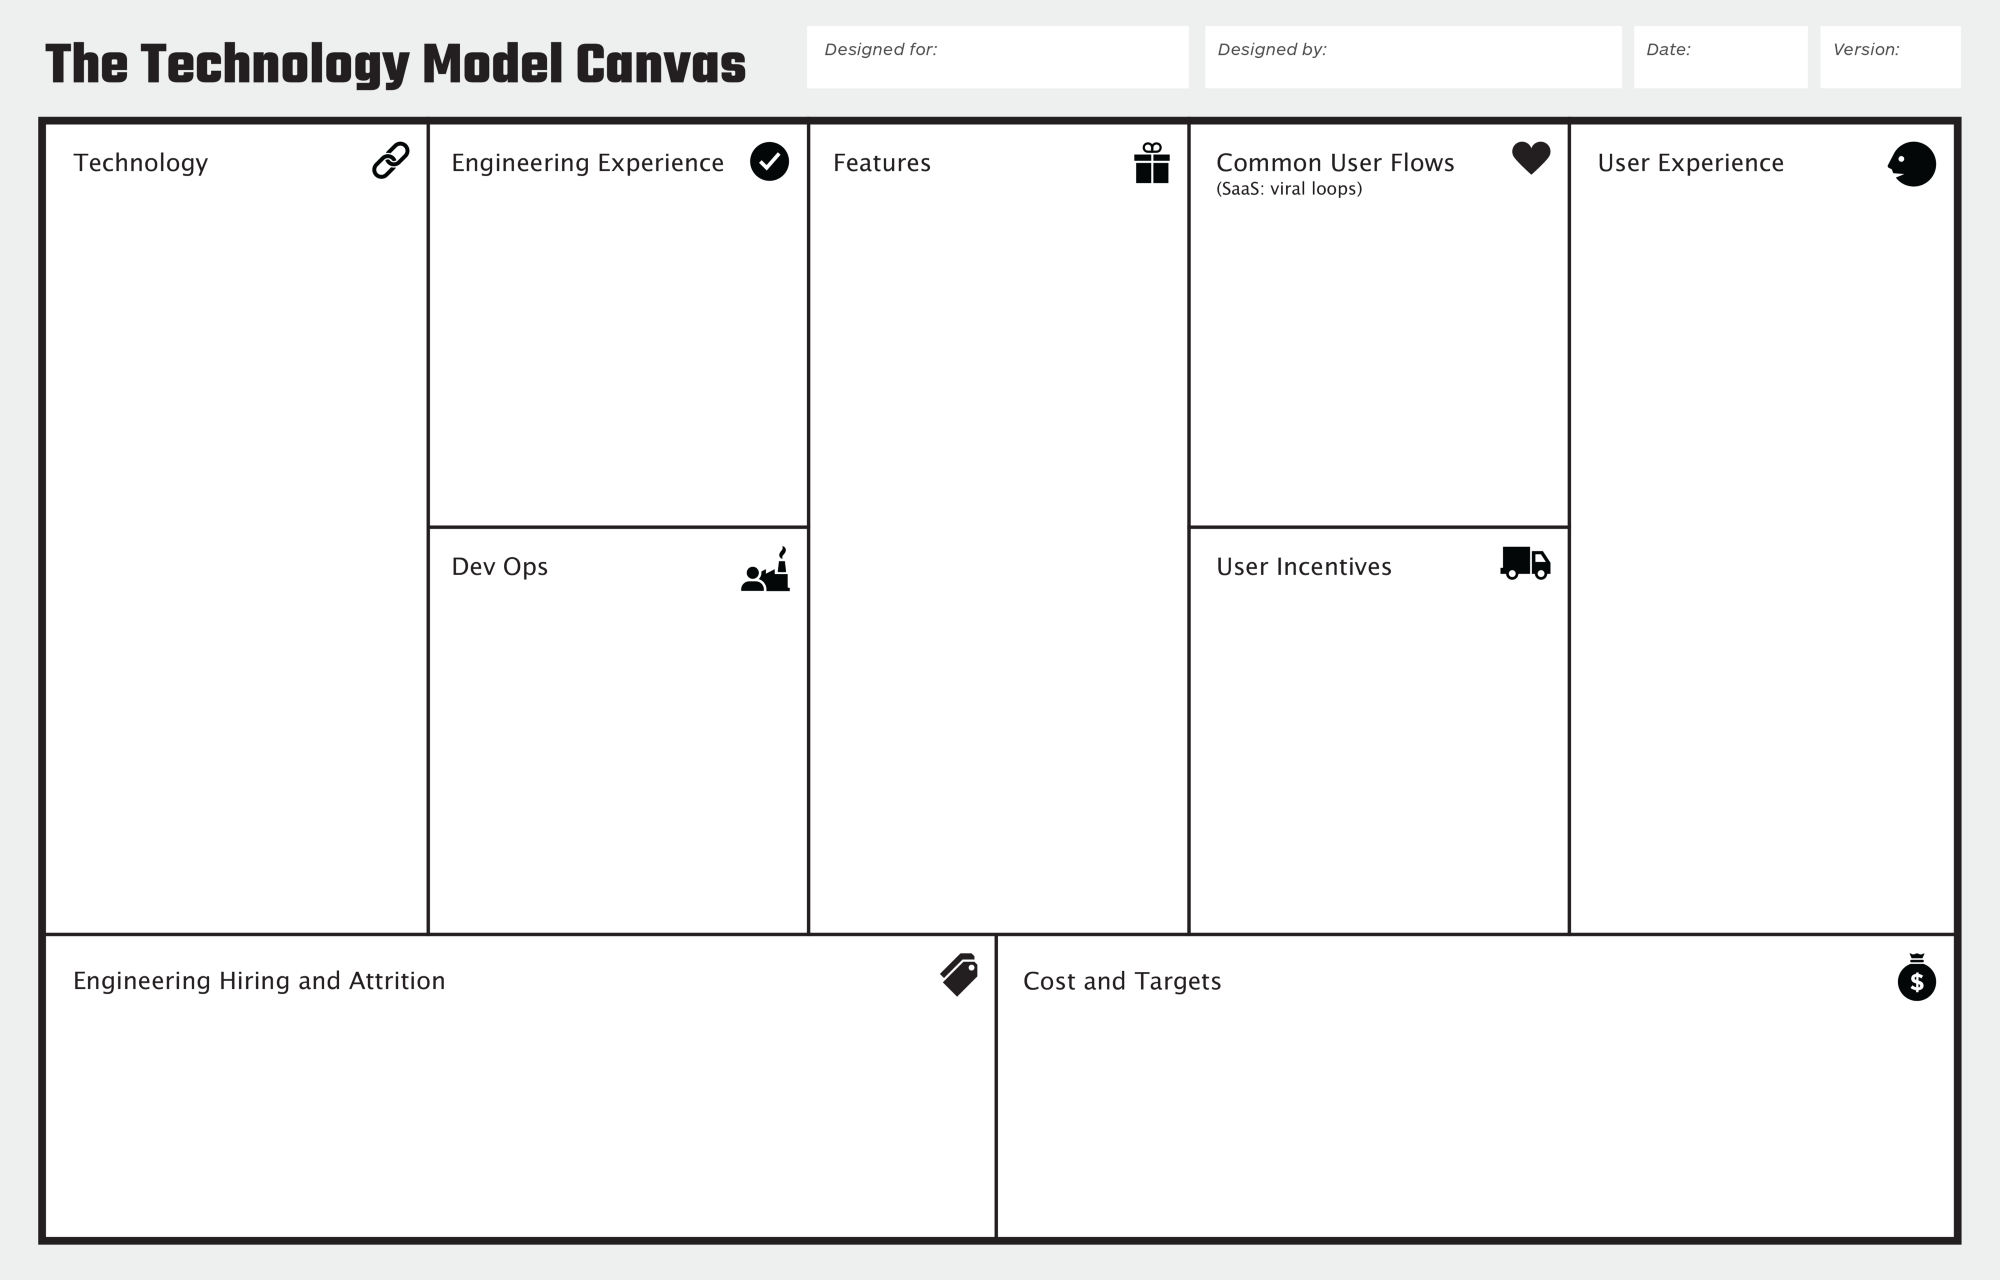 technology modal canvas by Ben Racicot